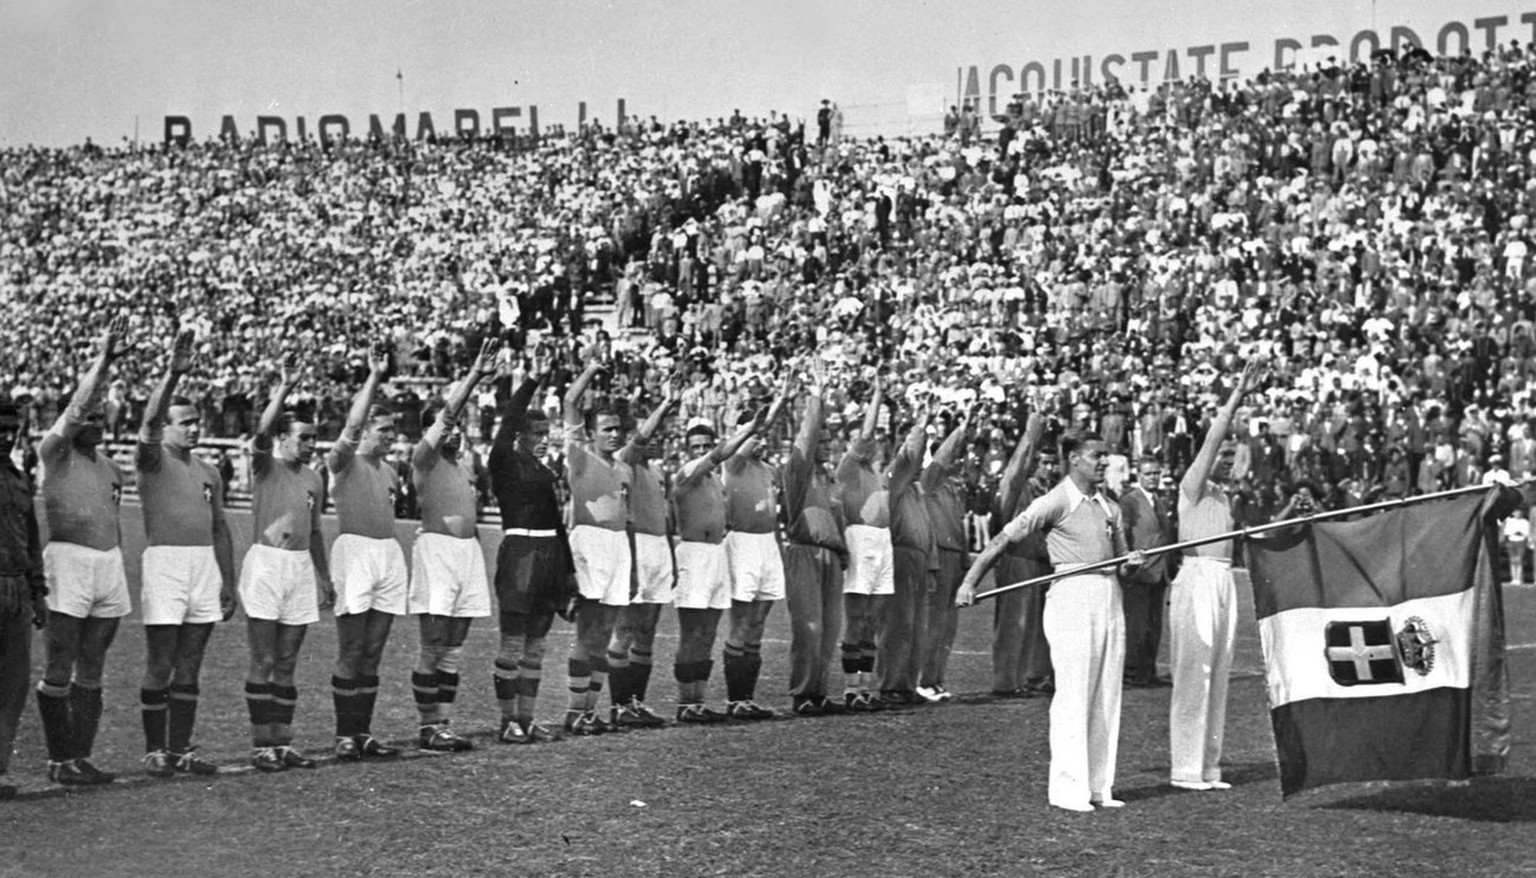 Italian soccer team performs the fascist salute before the kick off of the World Cup Final. Italy defeated Czechoslovakia 2-1 after extra time to win the Rimet Cup on June 10, 1934, at the Fascist National Party Stadium in Rome, Italy. (AP Photo)